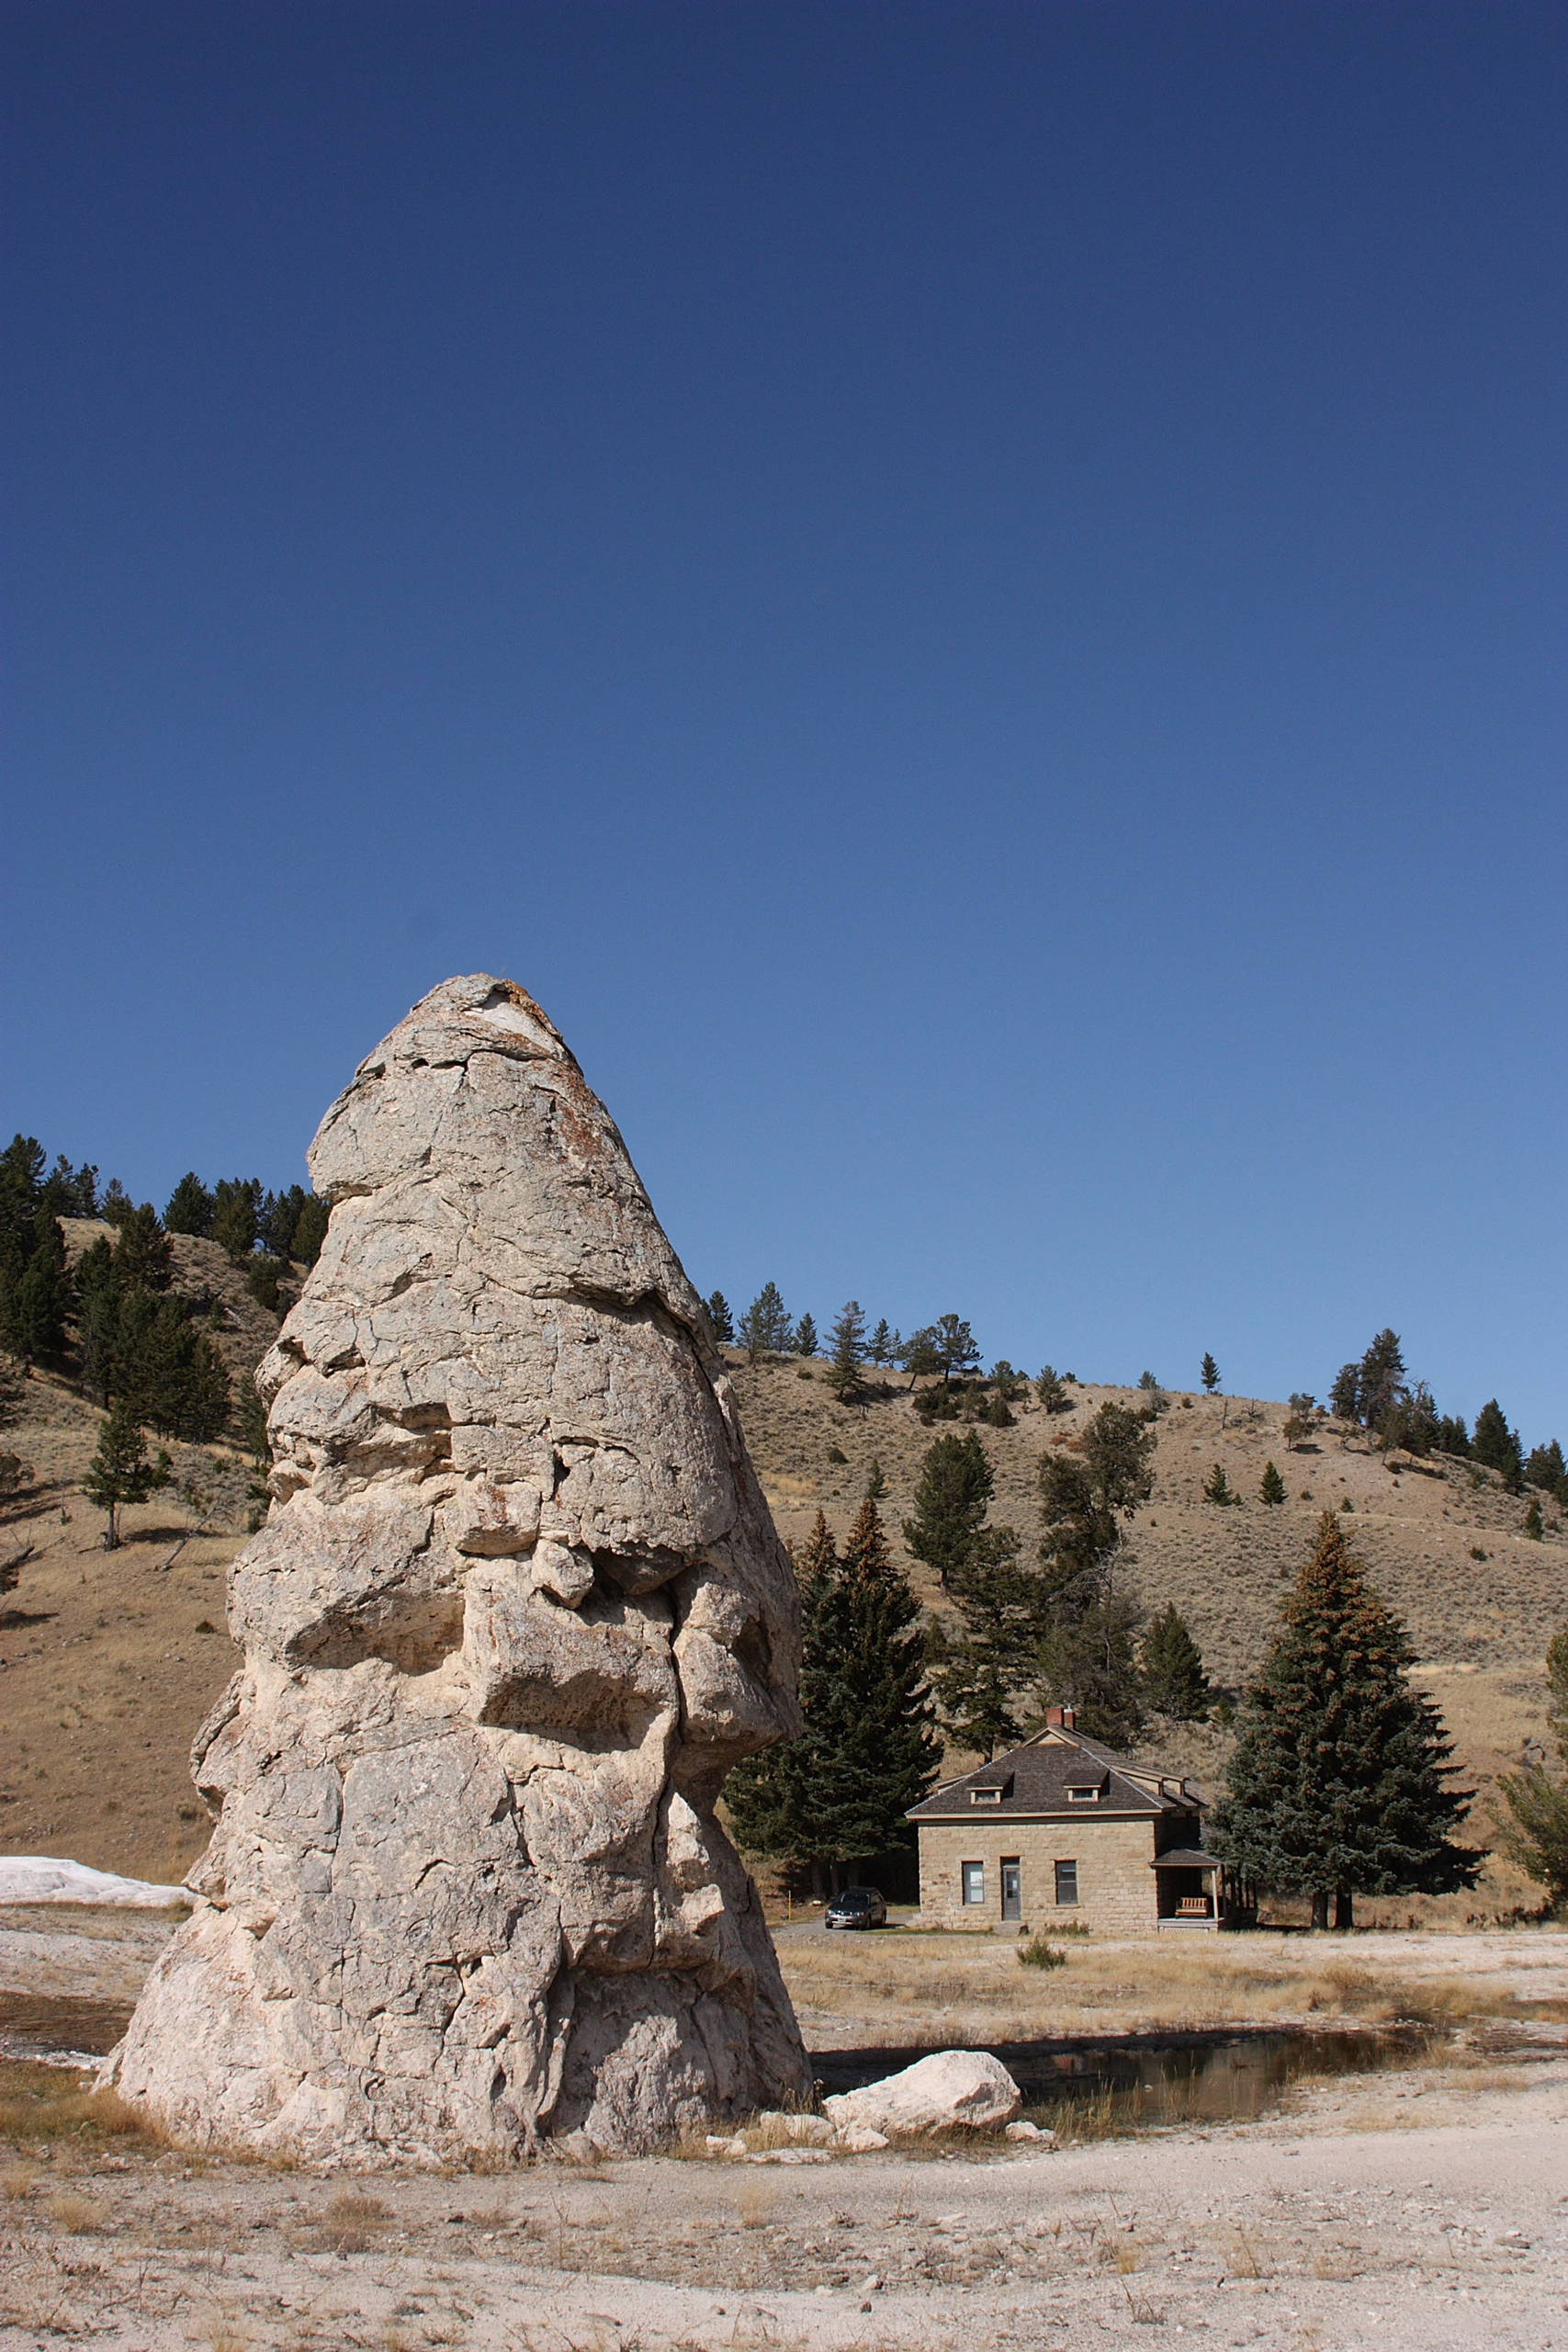 The rock structure known as Liberty Cap in the Mammoth Hot Springs area of Yellowstone National Park on Oct. 8, 2008.